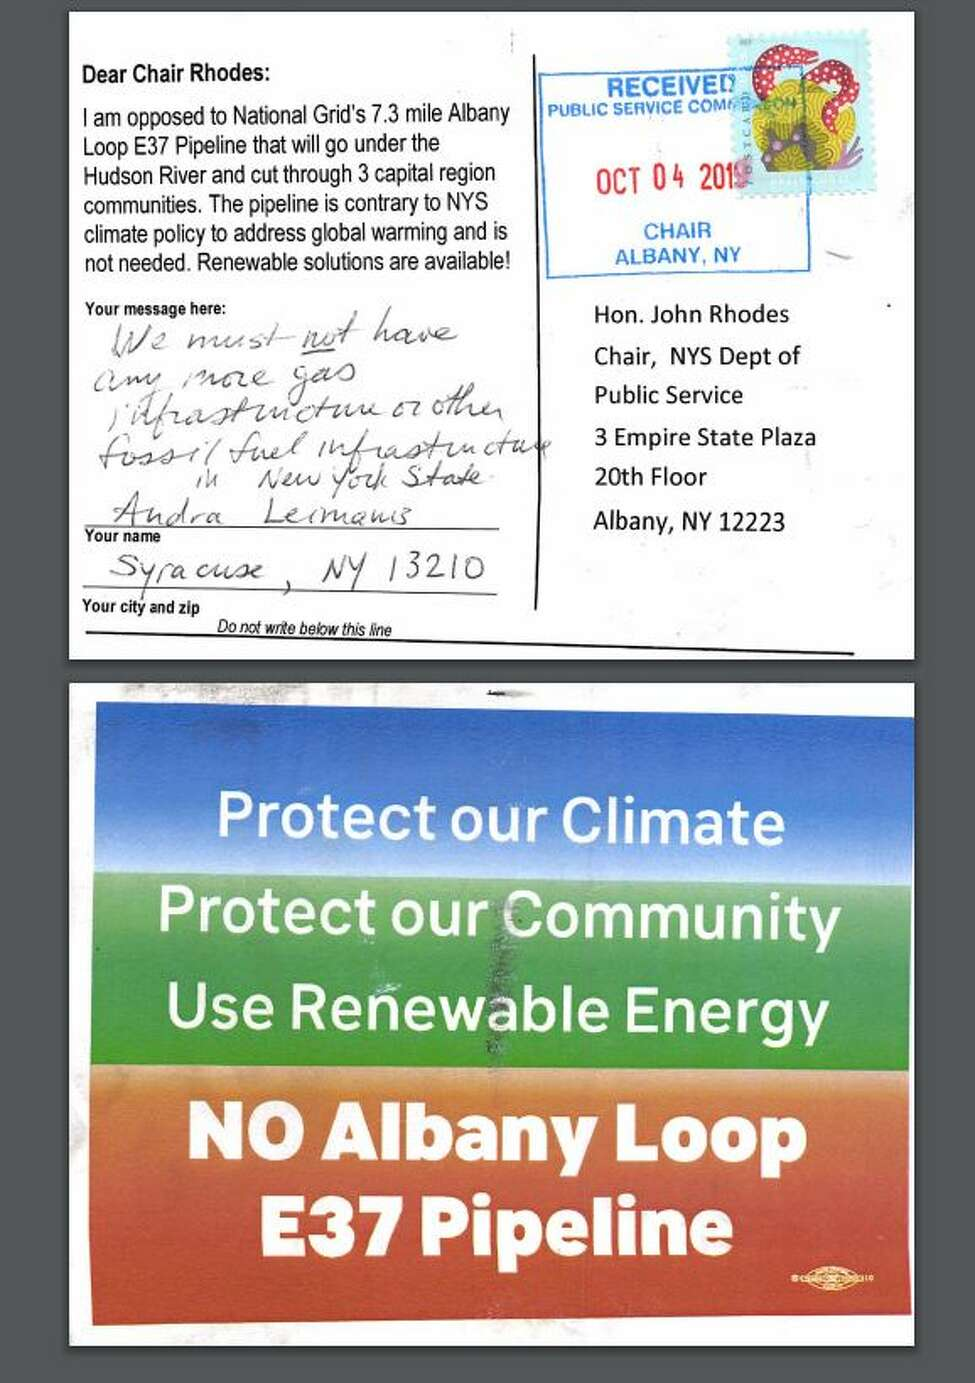 A generic post card opposing National Grid's E37 pipeline that environmental activists have been having supporters submit to the state Public Service Commission. National Grid has urged its own supporters in the business community to submit customized form letters to the PSC as well in support of the project